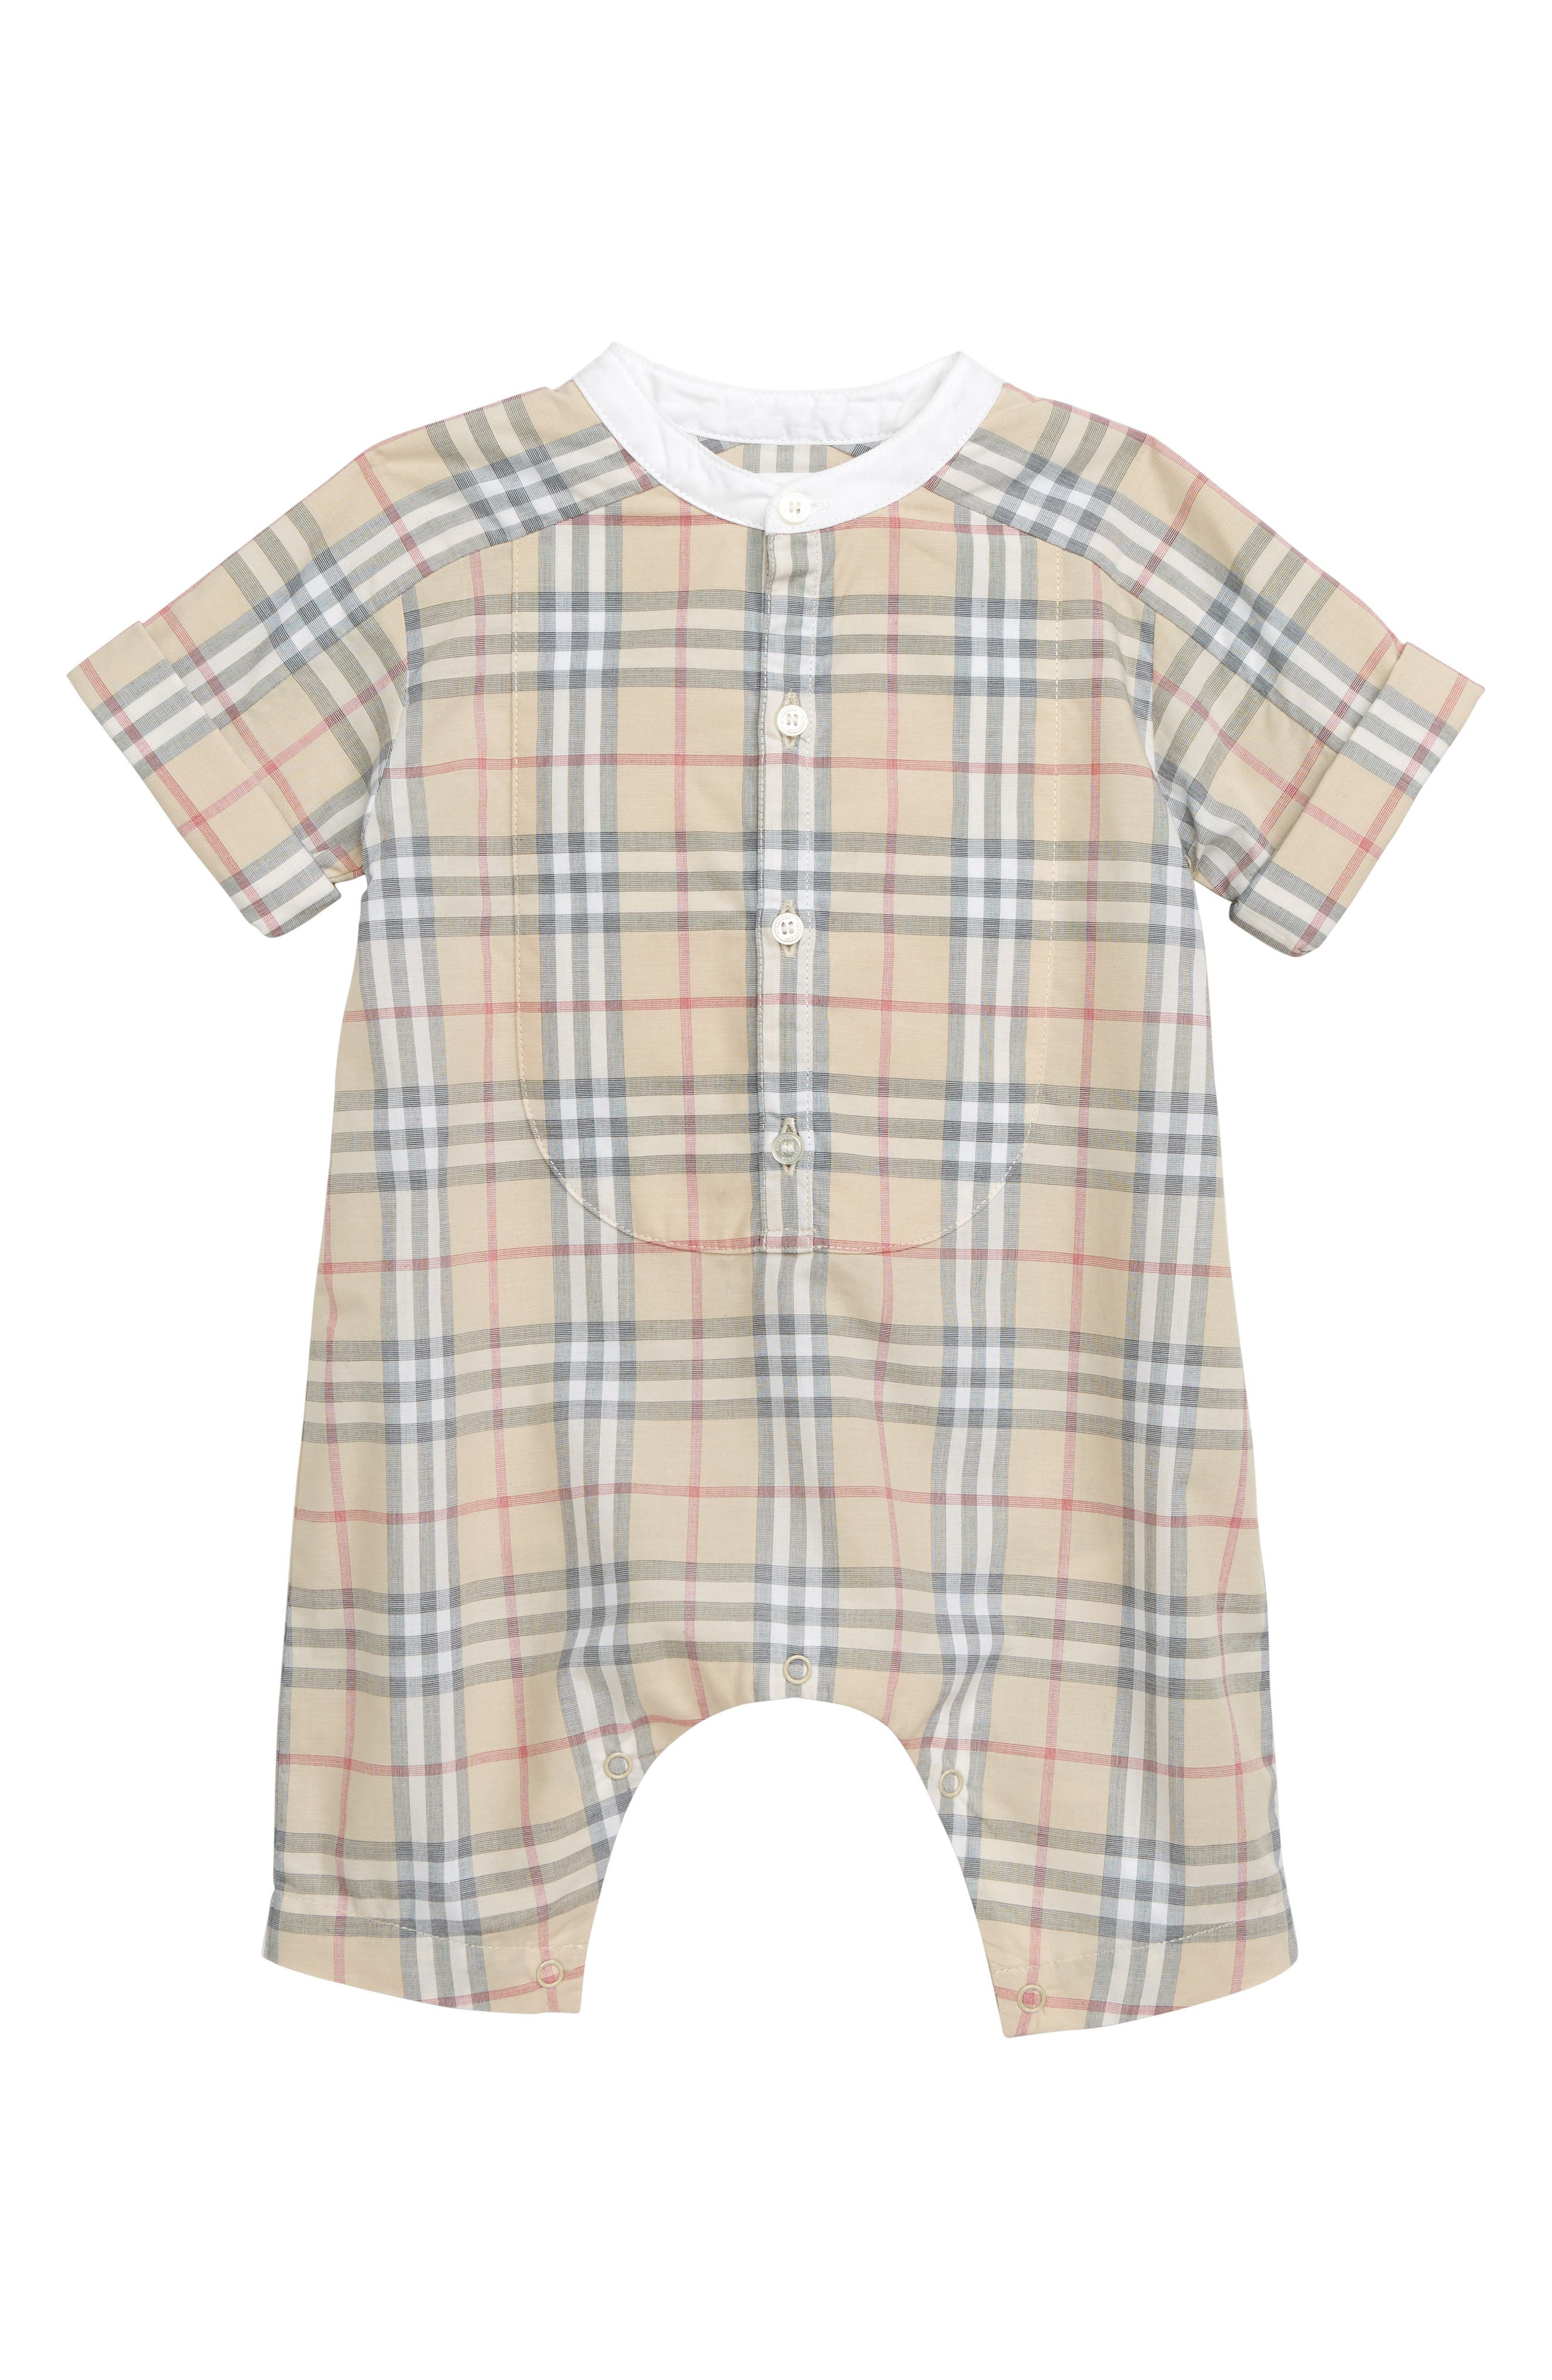 BURBERRY, Colton Check Romper, Main thumbnail 1, color, 250